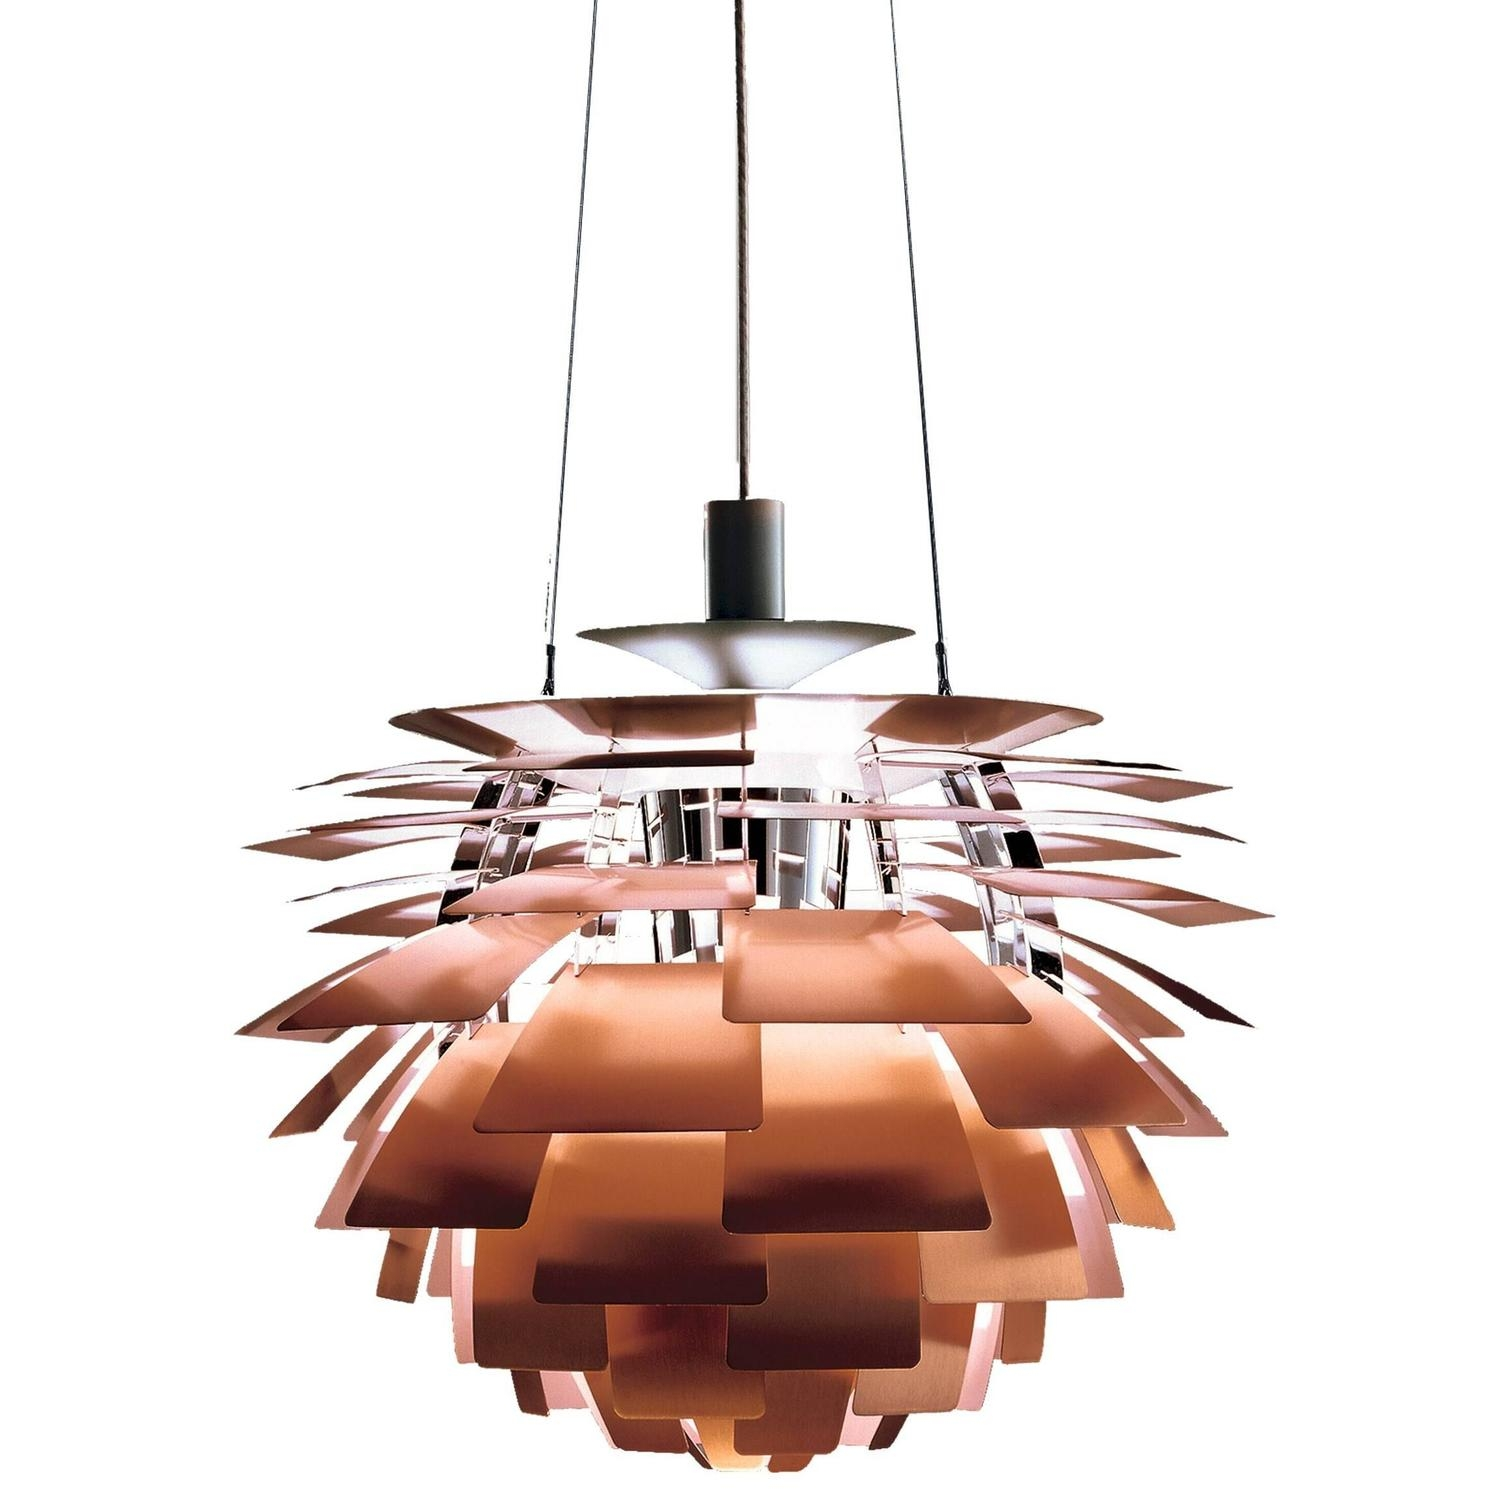 Louis Poulsen Chandeliers And Pendants 205 For Sale At 1stdibs For Copper Chandelier (Image 9 of 15)